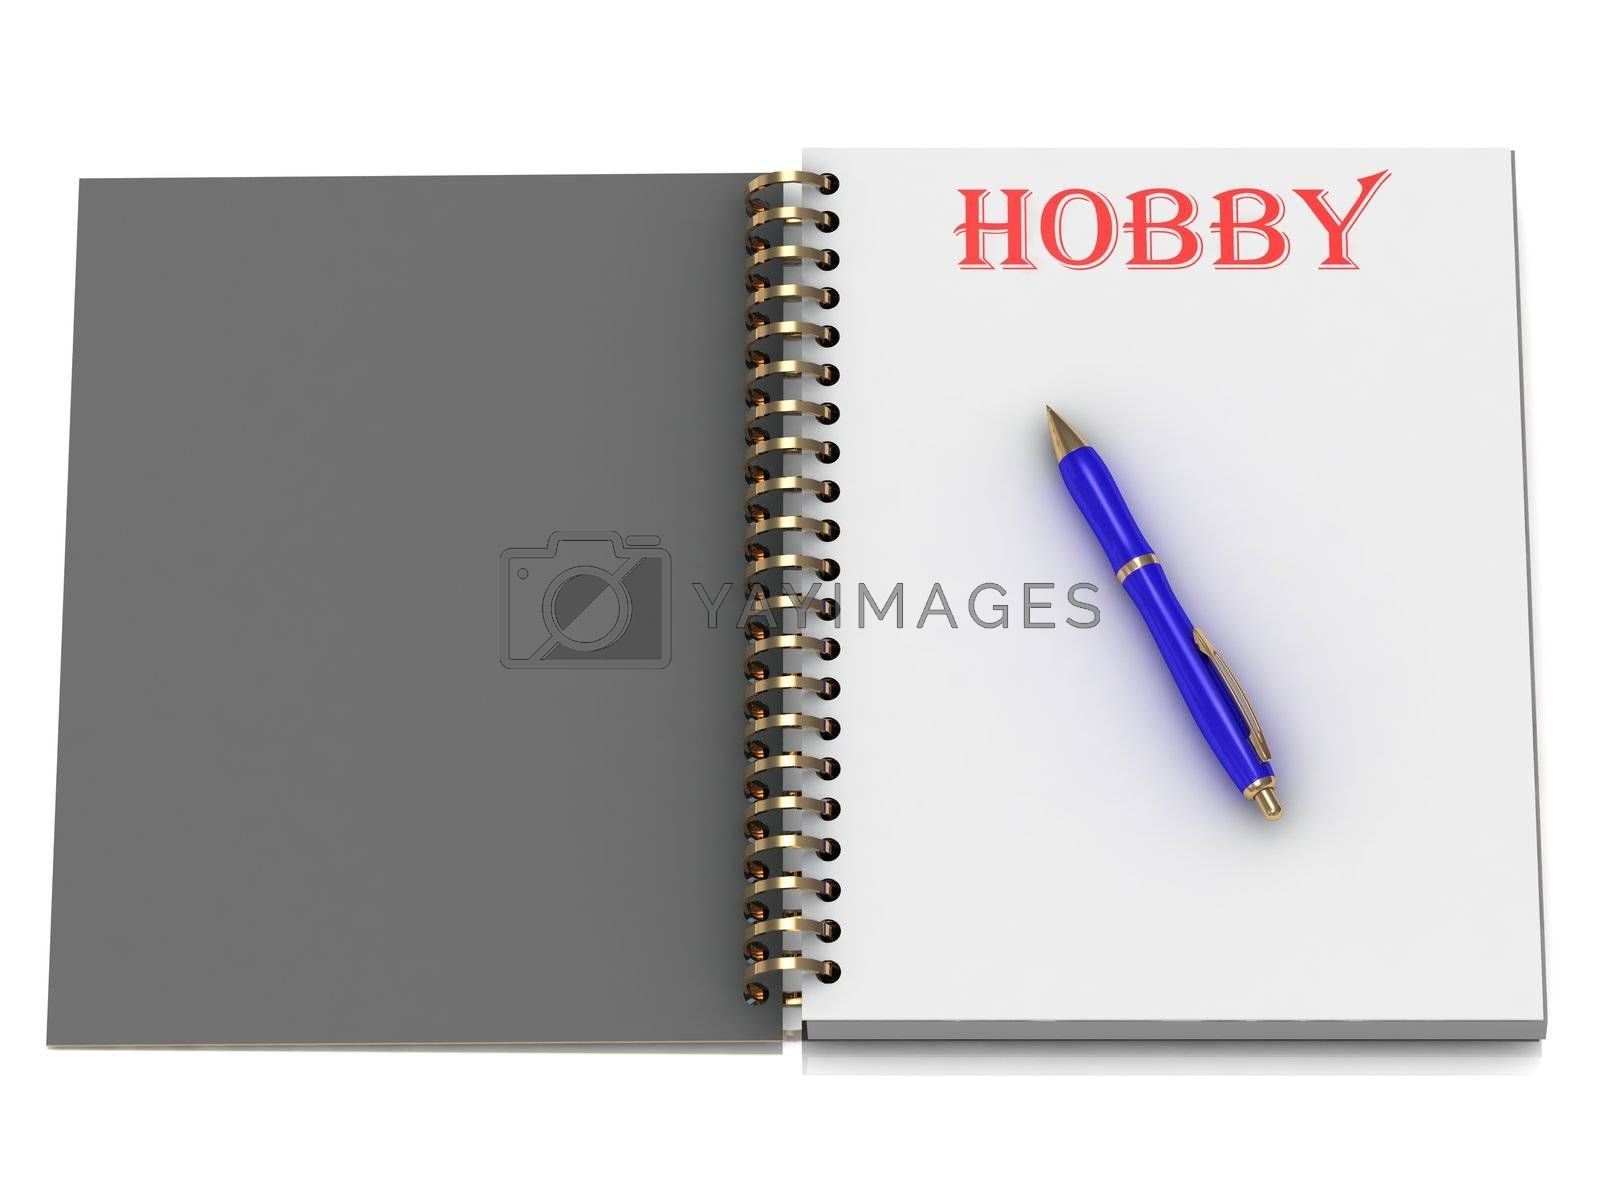 HOBBY word on notebook page  by GreenM